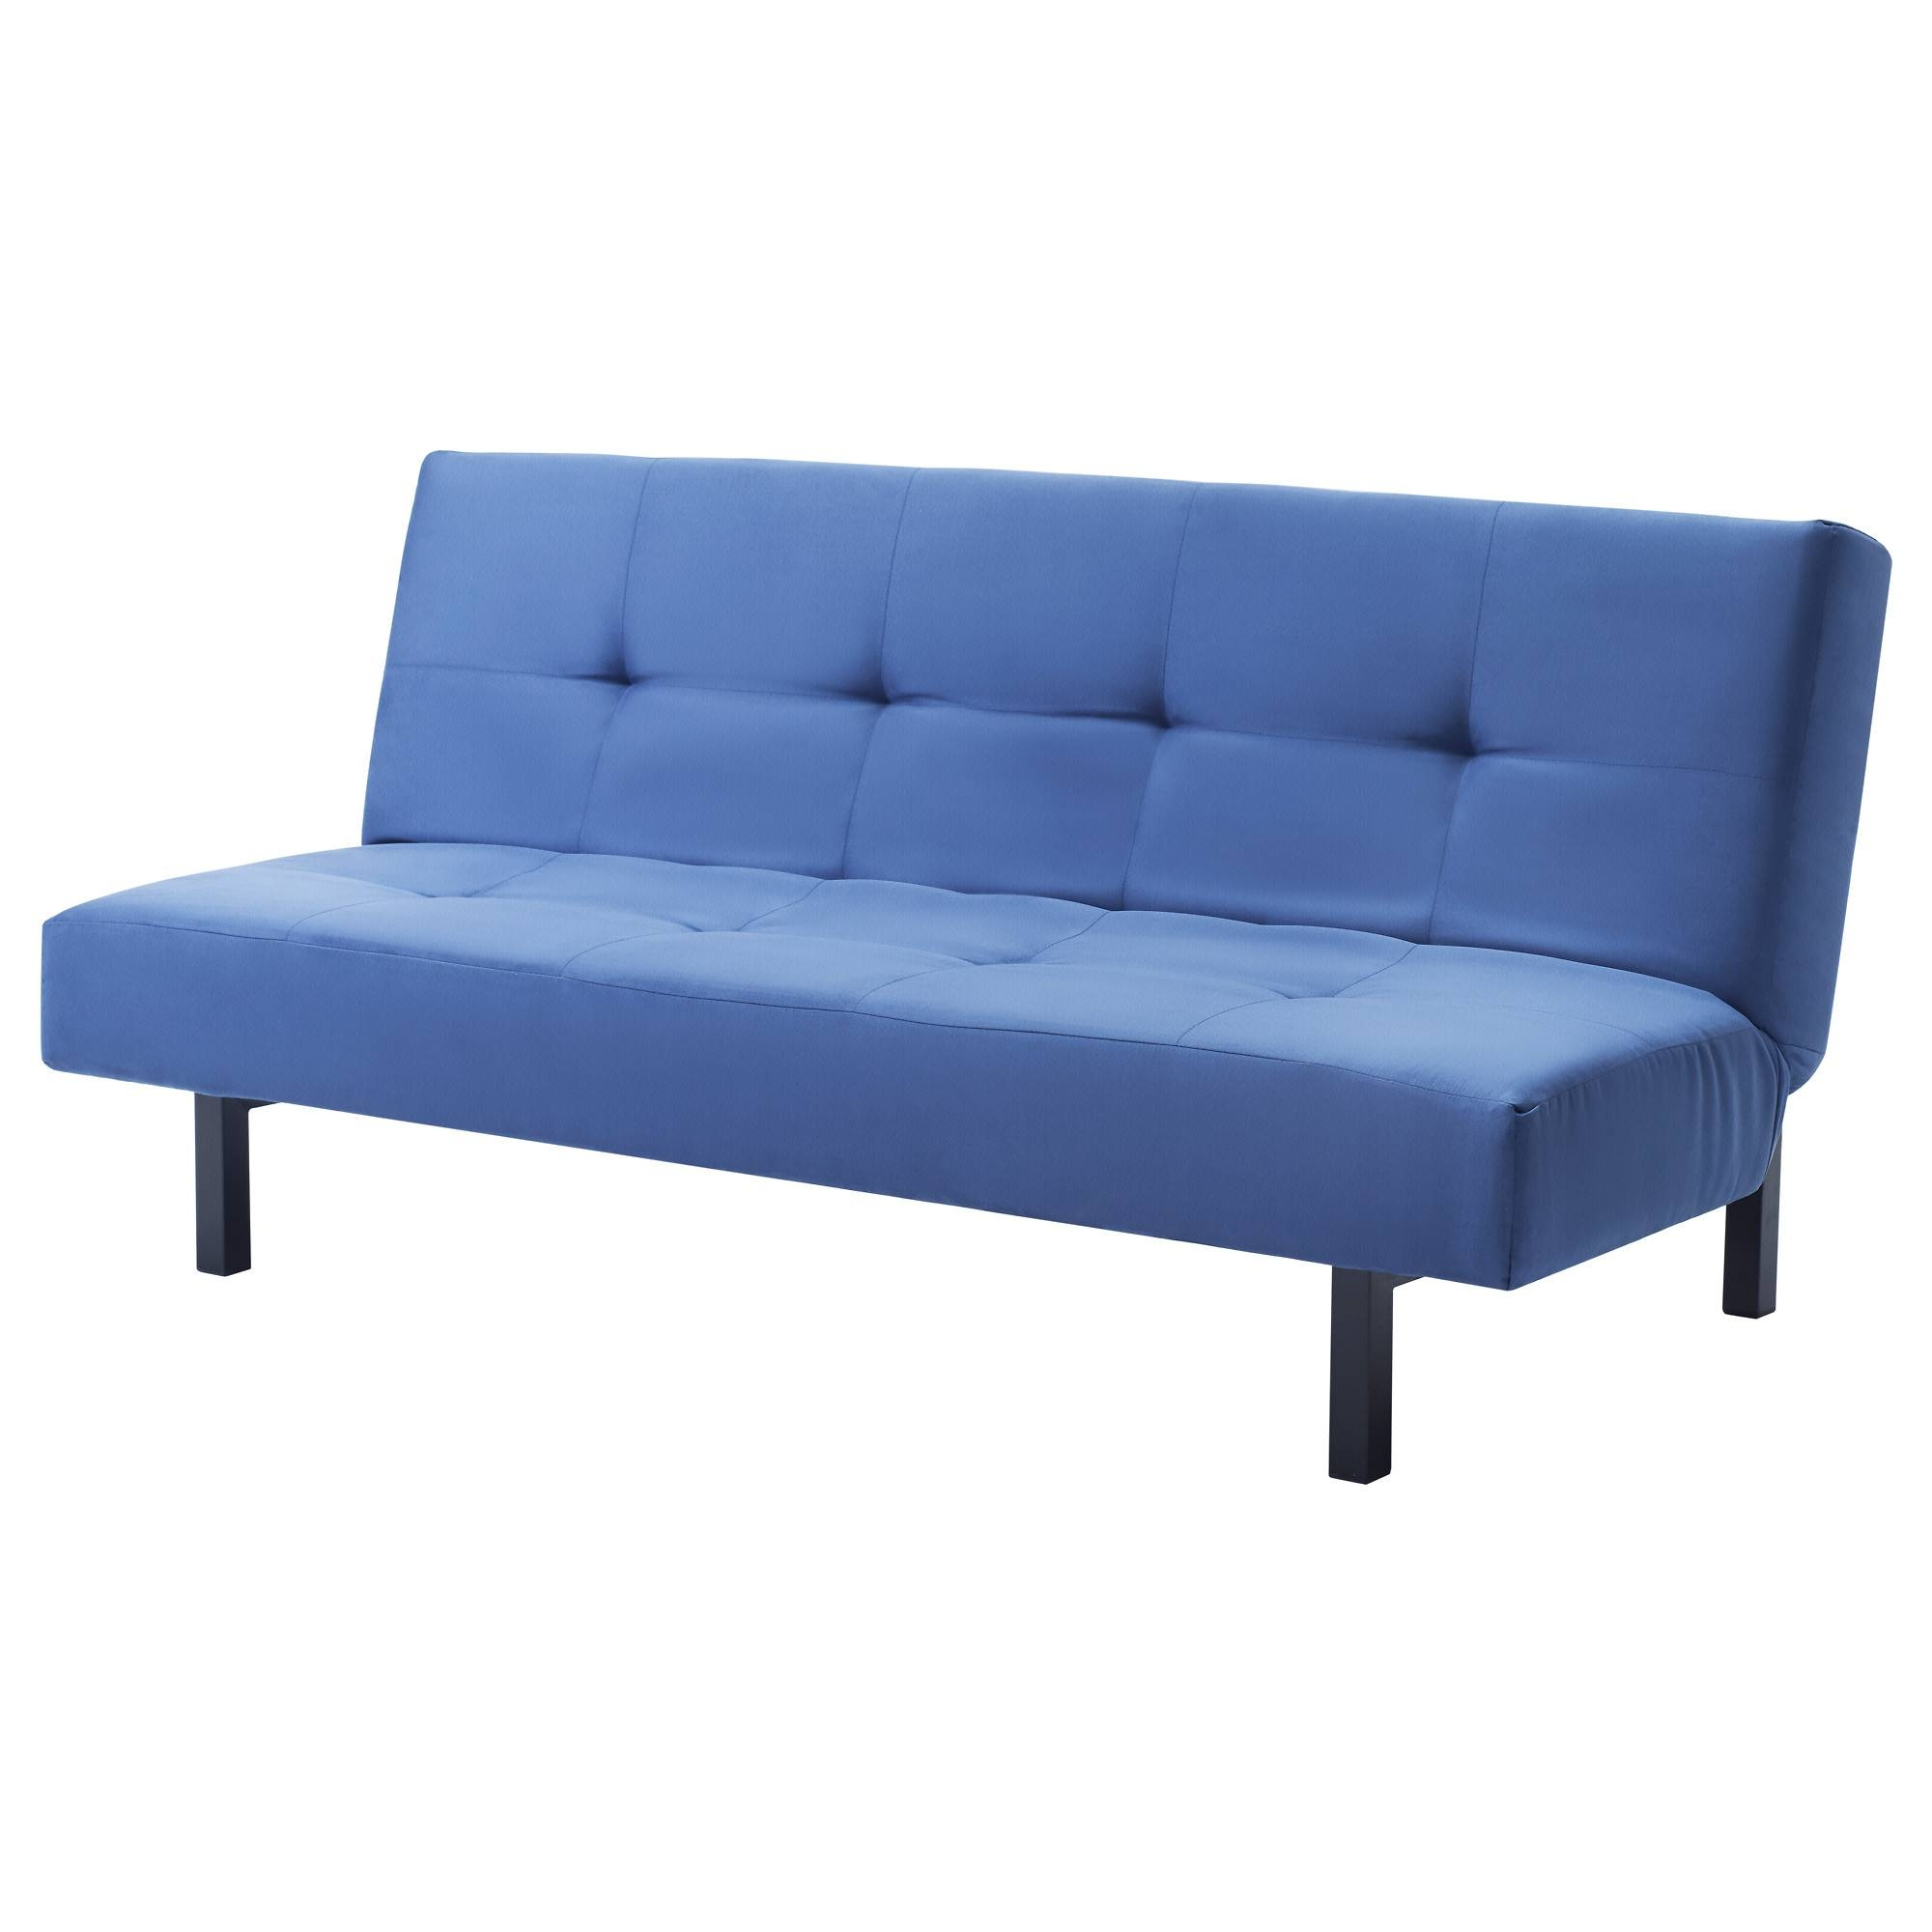 Furniture: Cozy Sleeper Sofa Ikea For Best Sleeper Sofa Ideas throughout Mini Sofa Beds (Image 7 of 30)